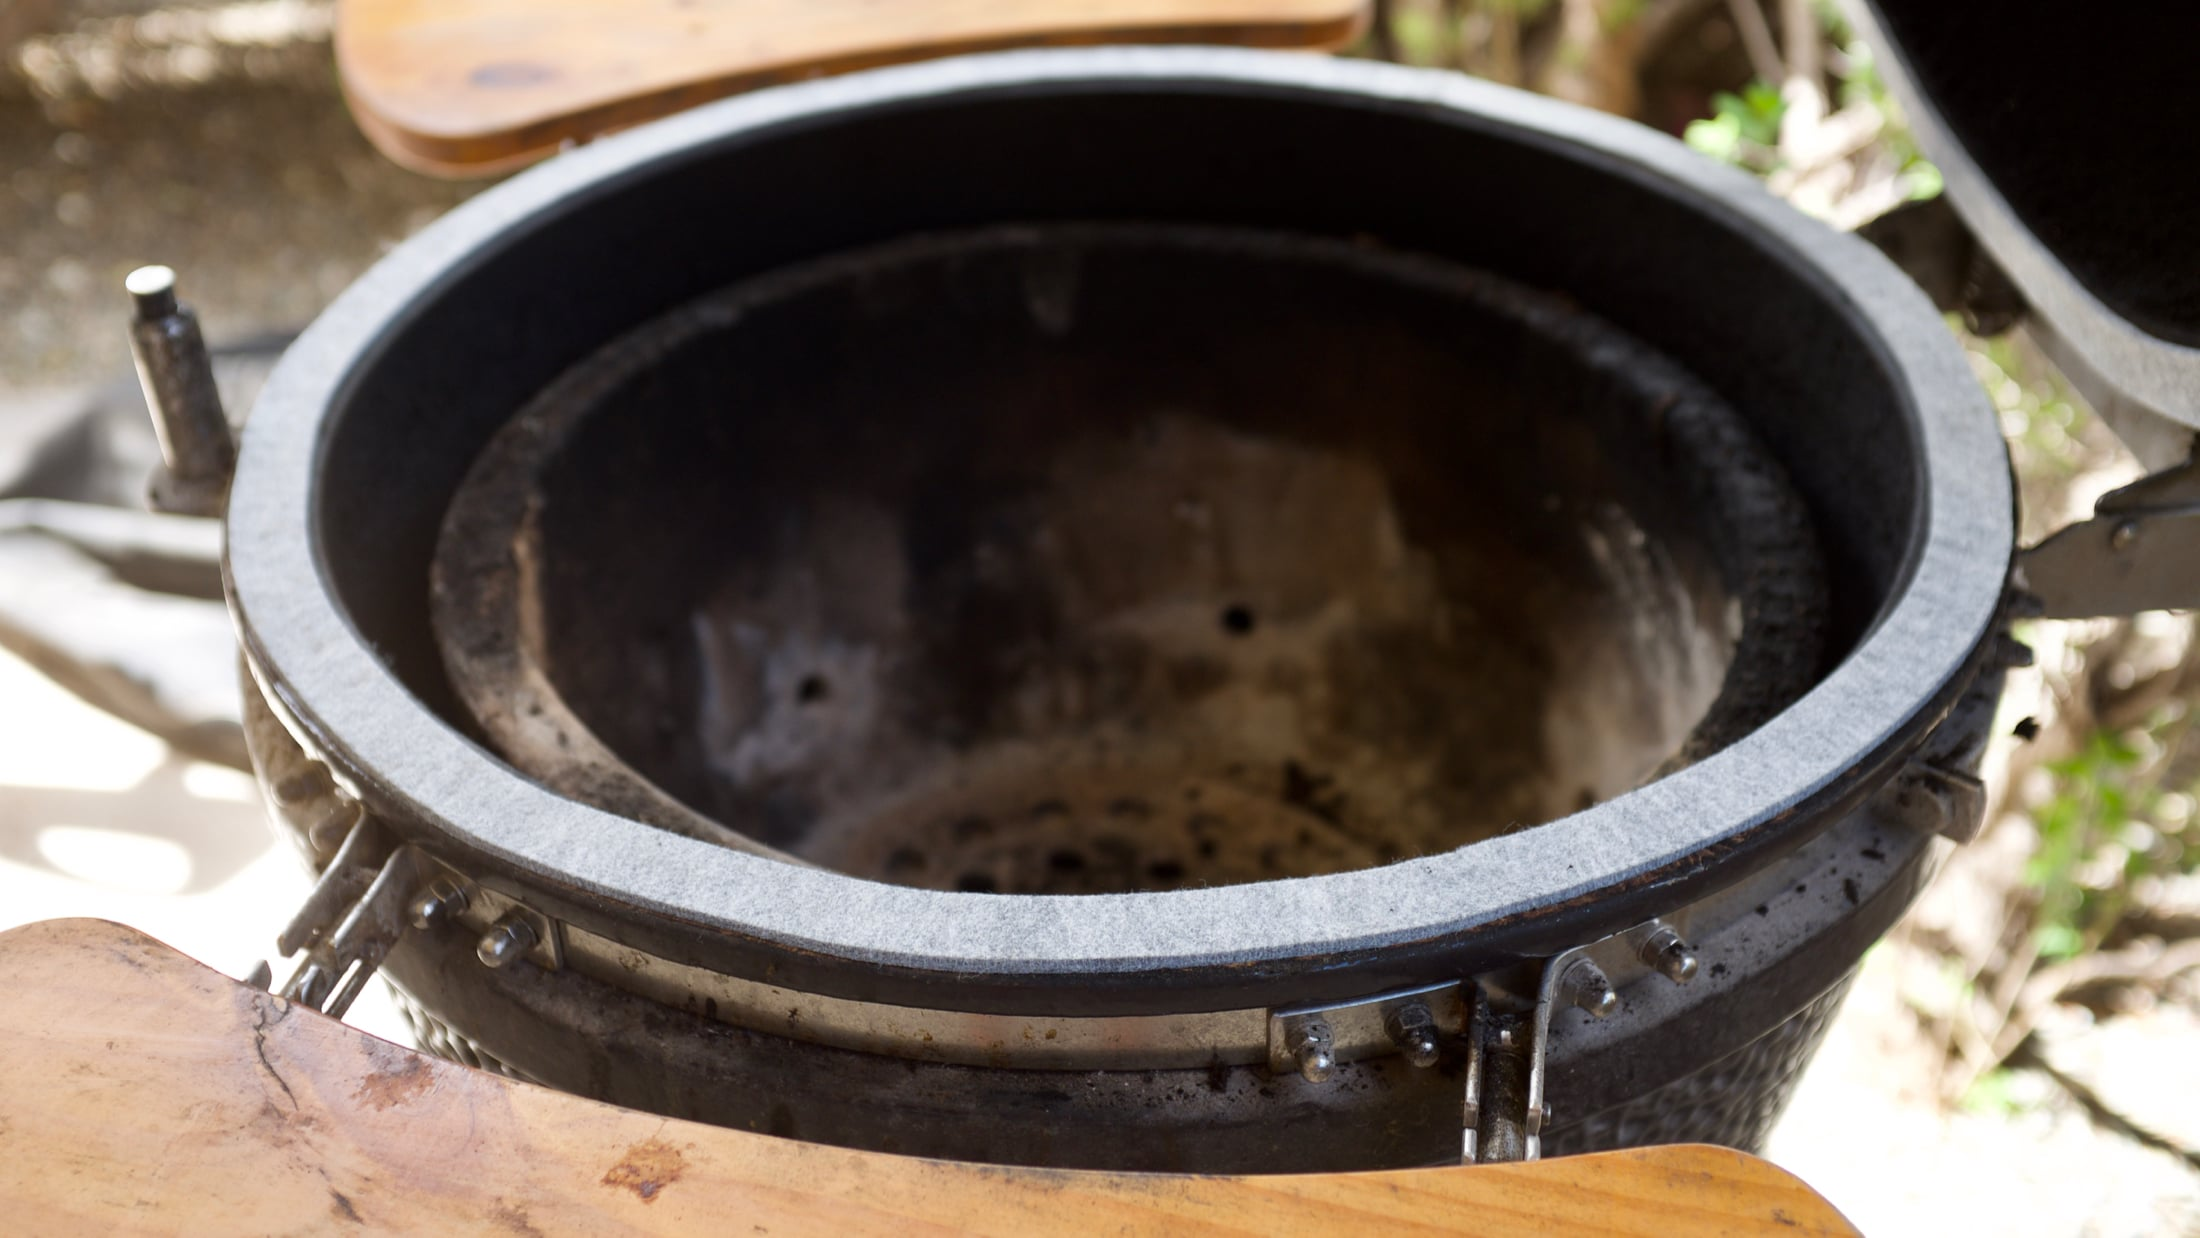 Kamado grill with fresh gaskets